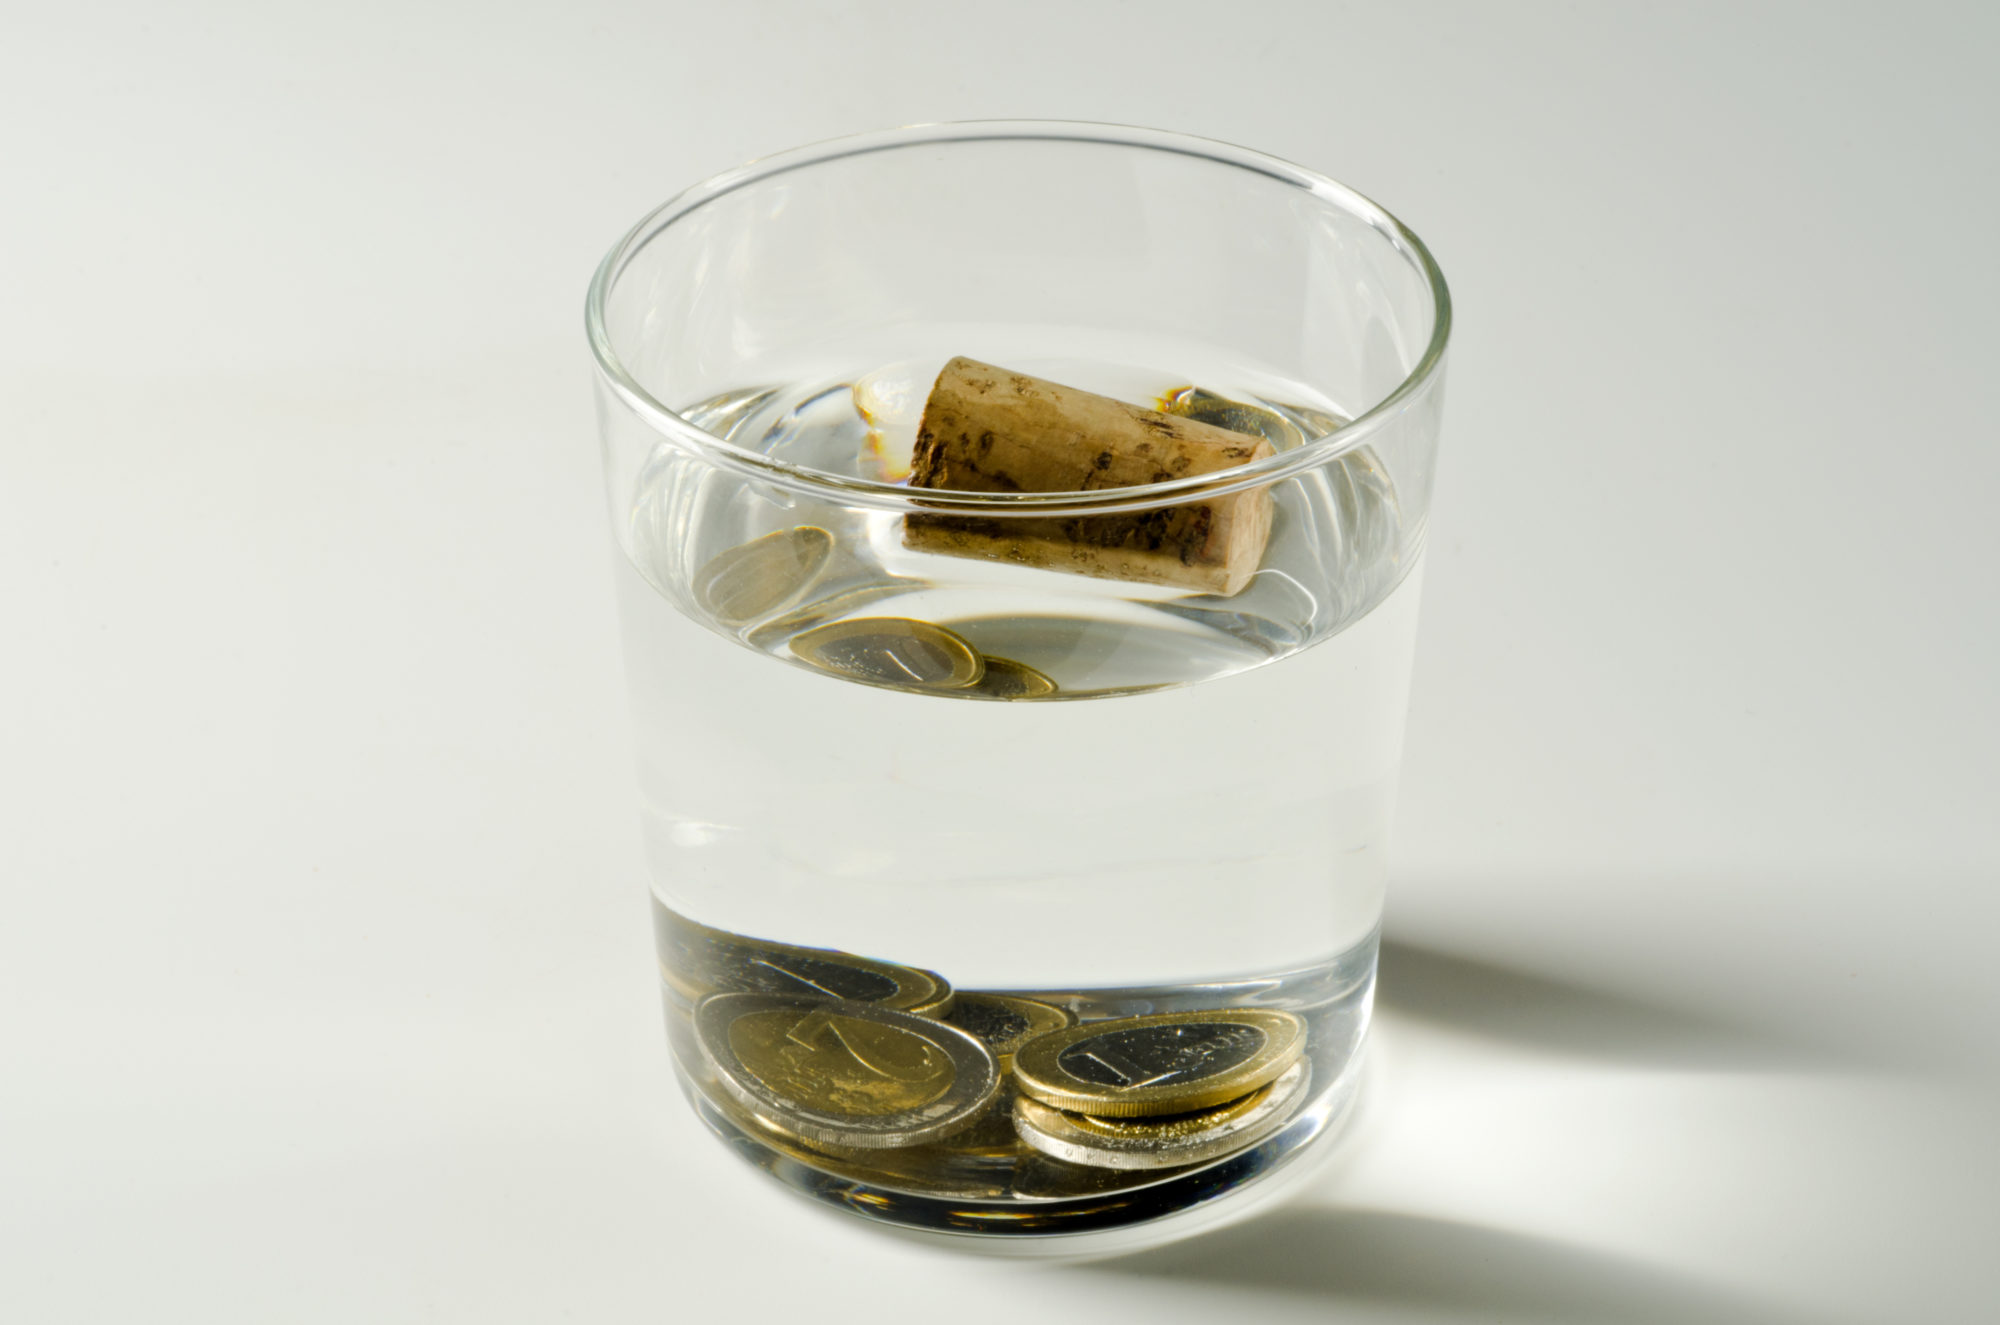 Gold coins sink in water